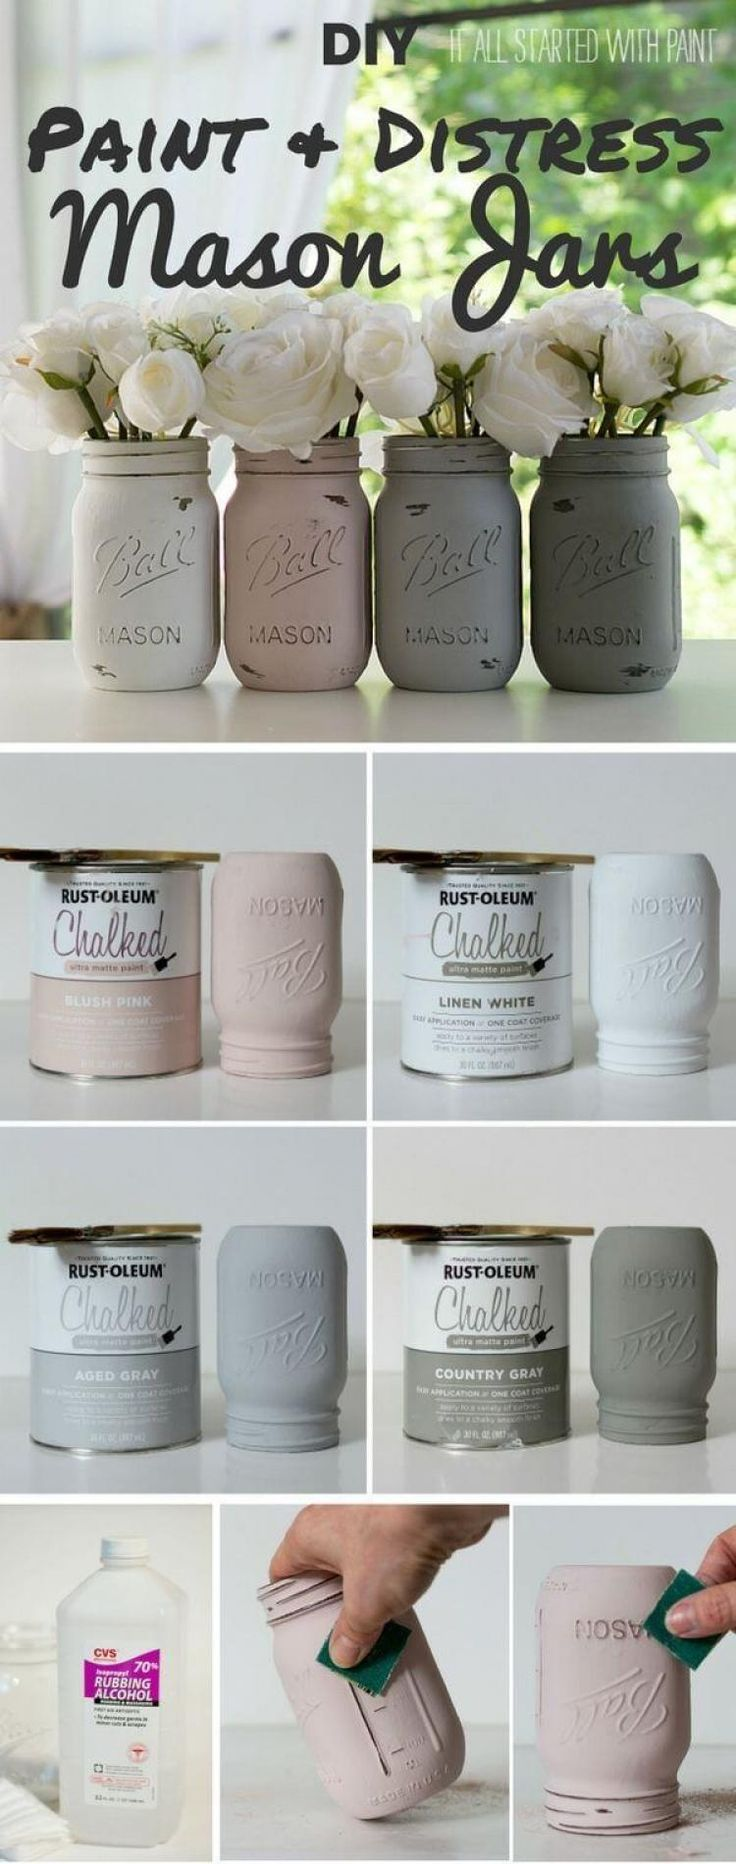 30 Creative and Easy DIY Home Decor Projects Ideas | Project ideas ...